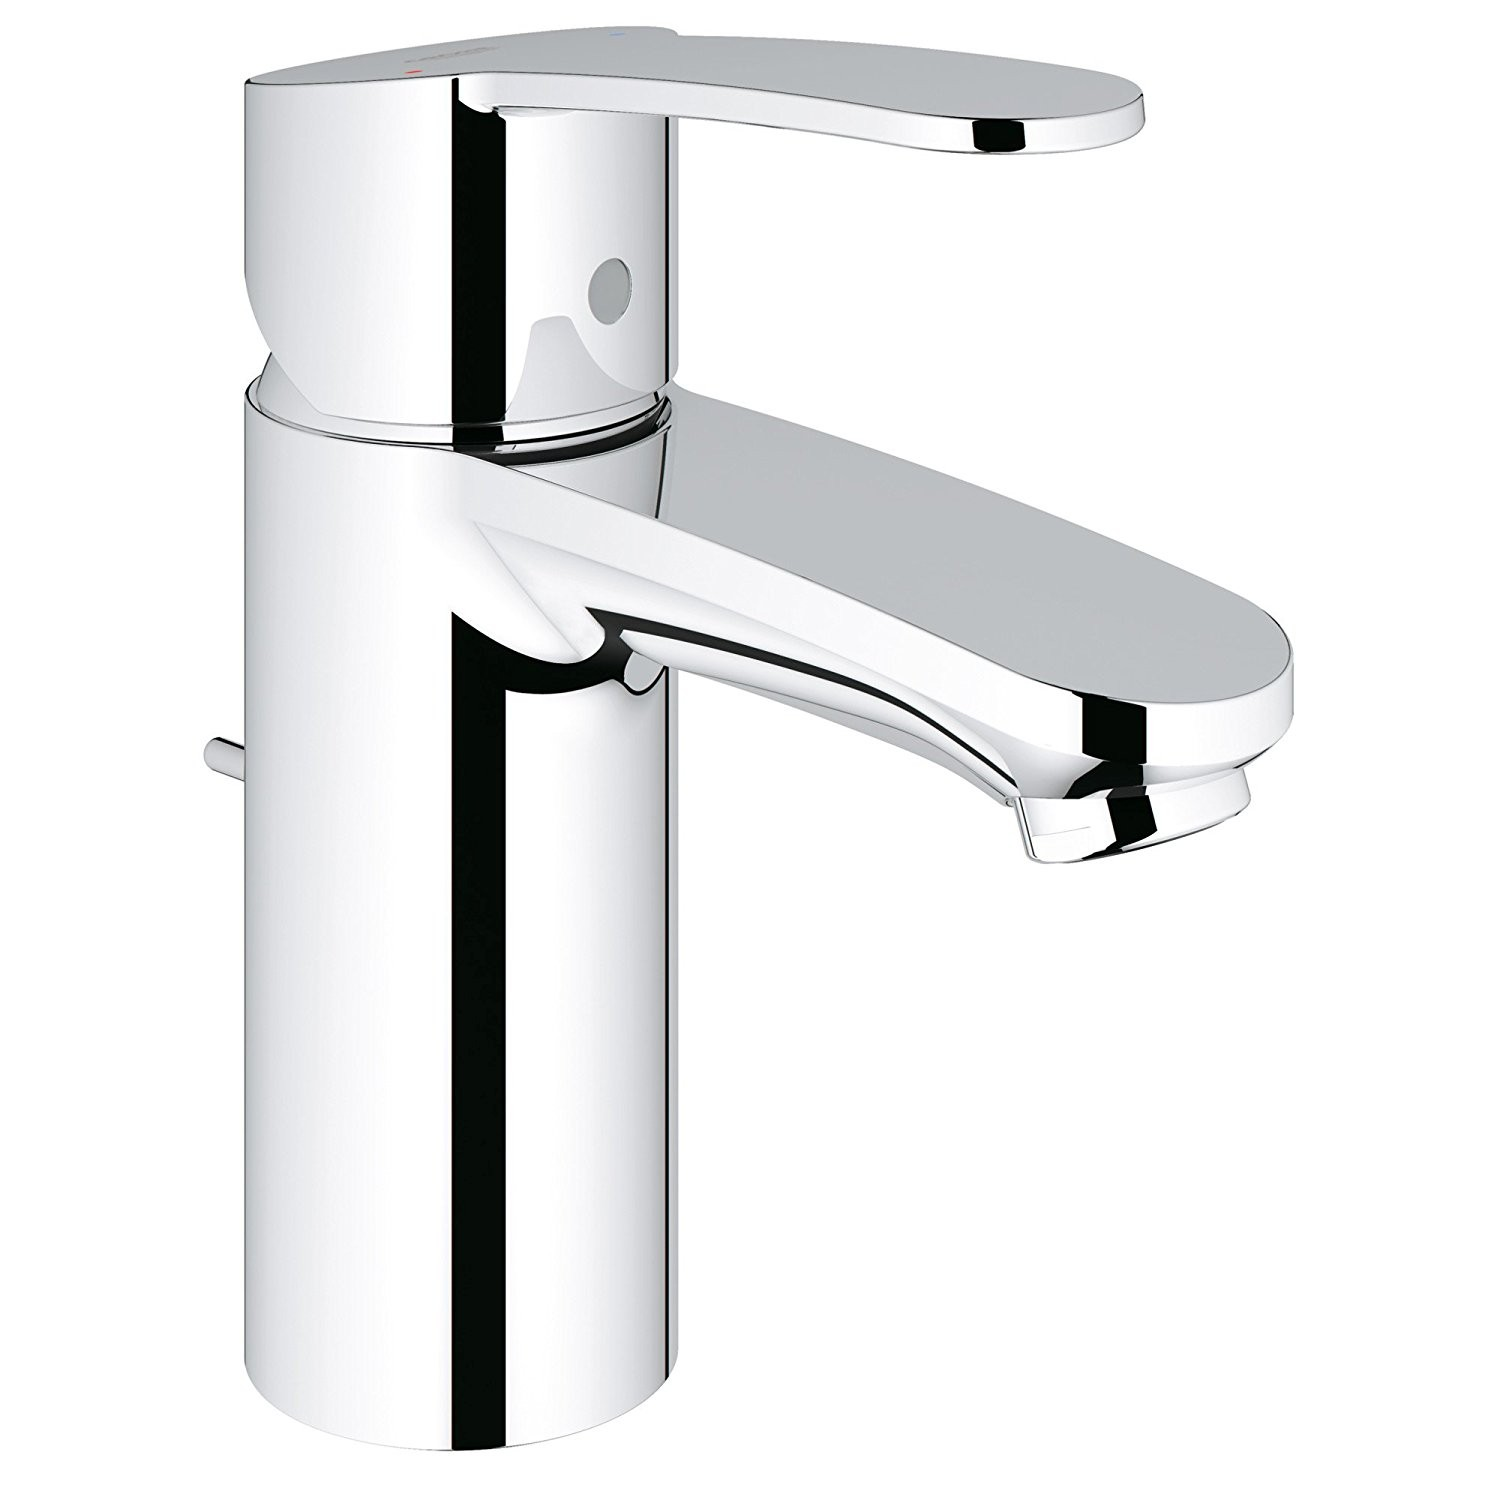 grohe touchless bathroom faucet Archives - Bathroom Design Ideas ...